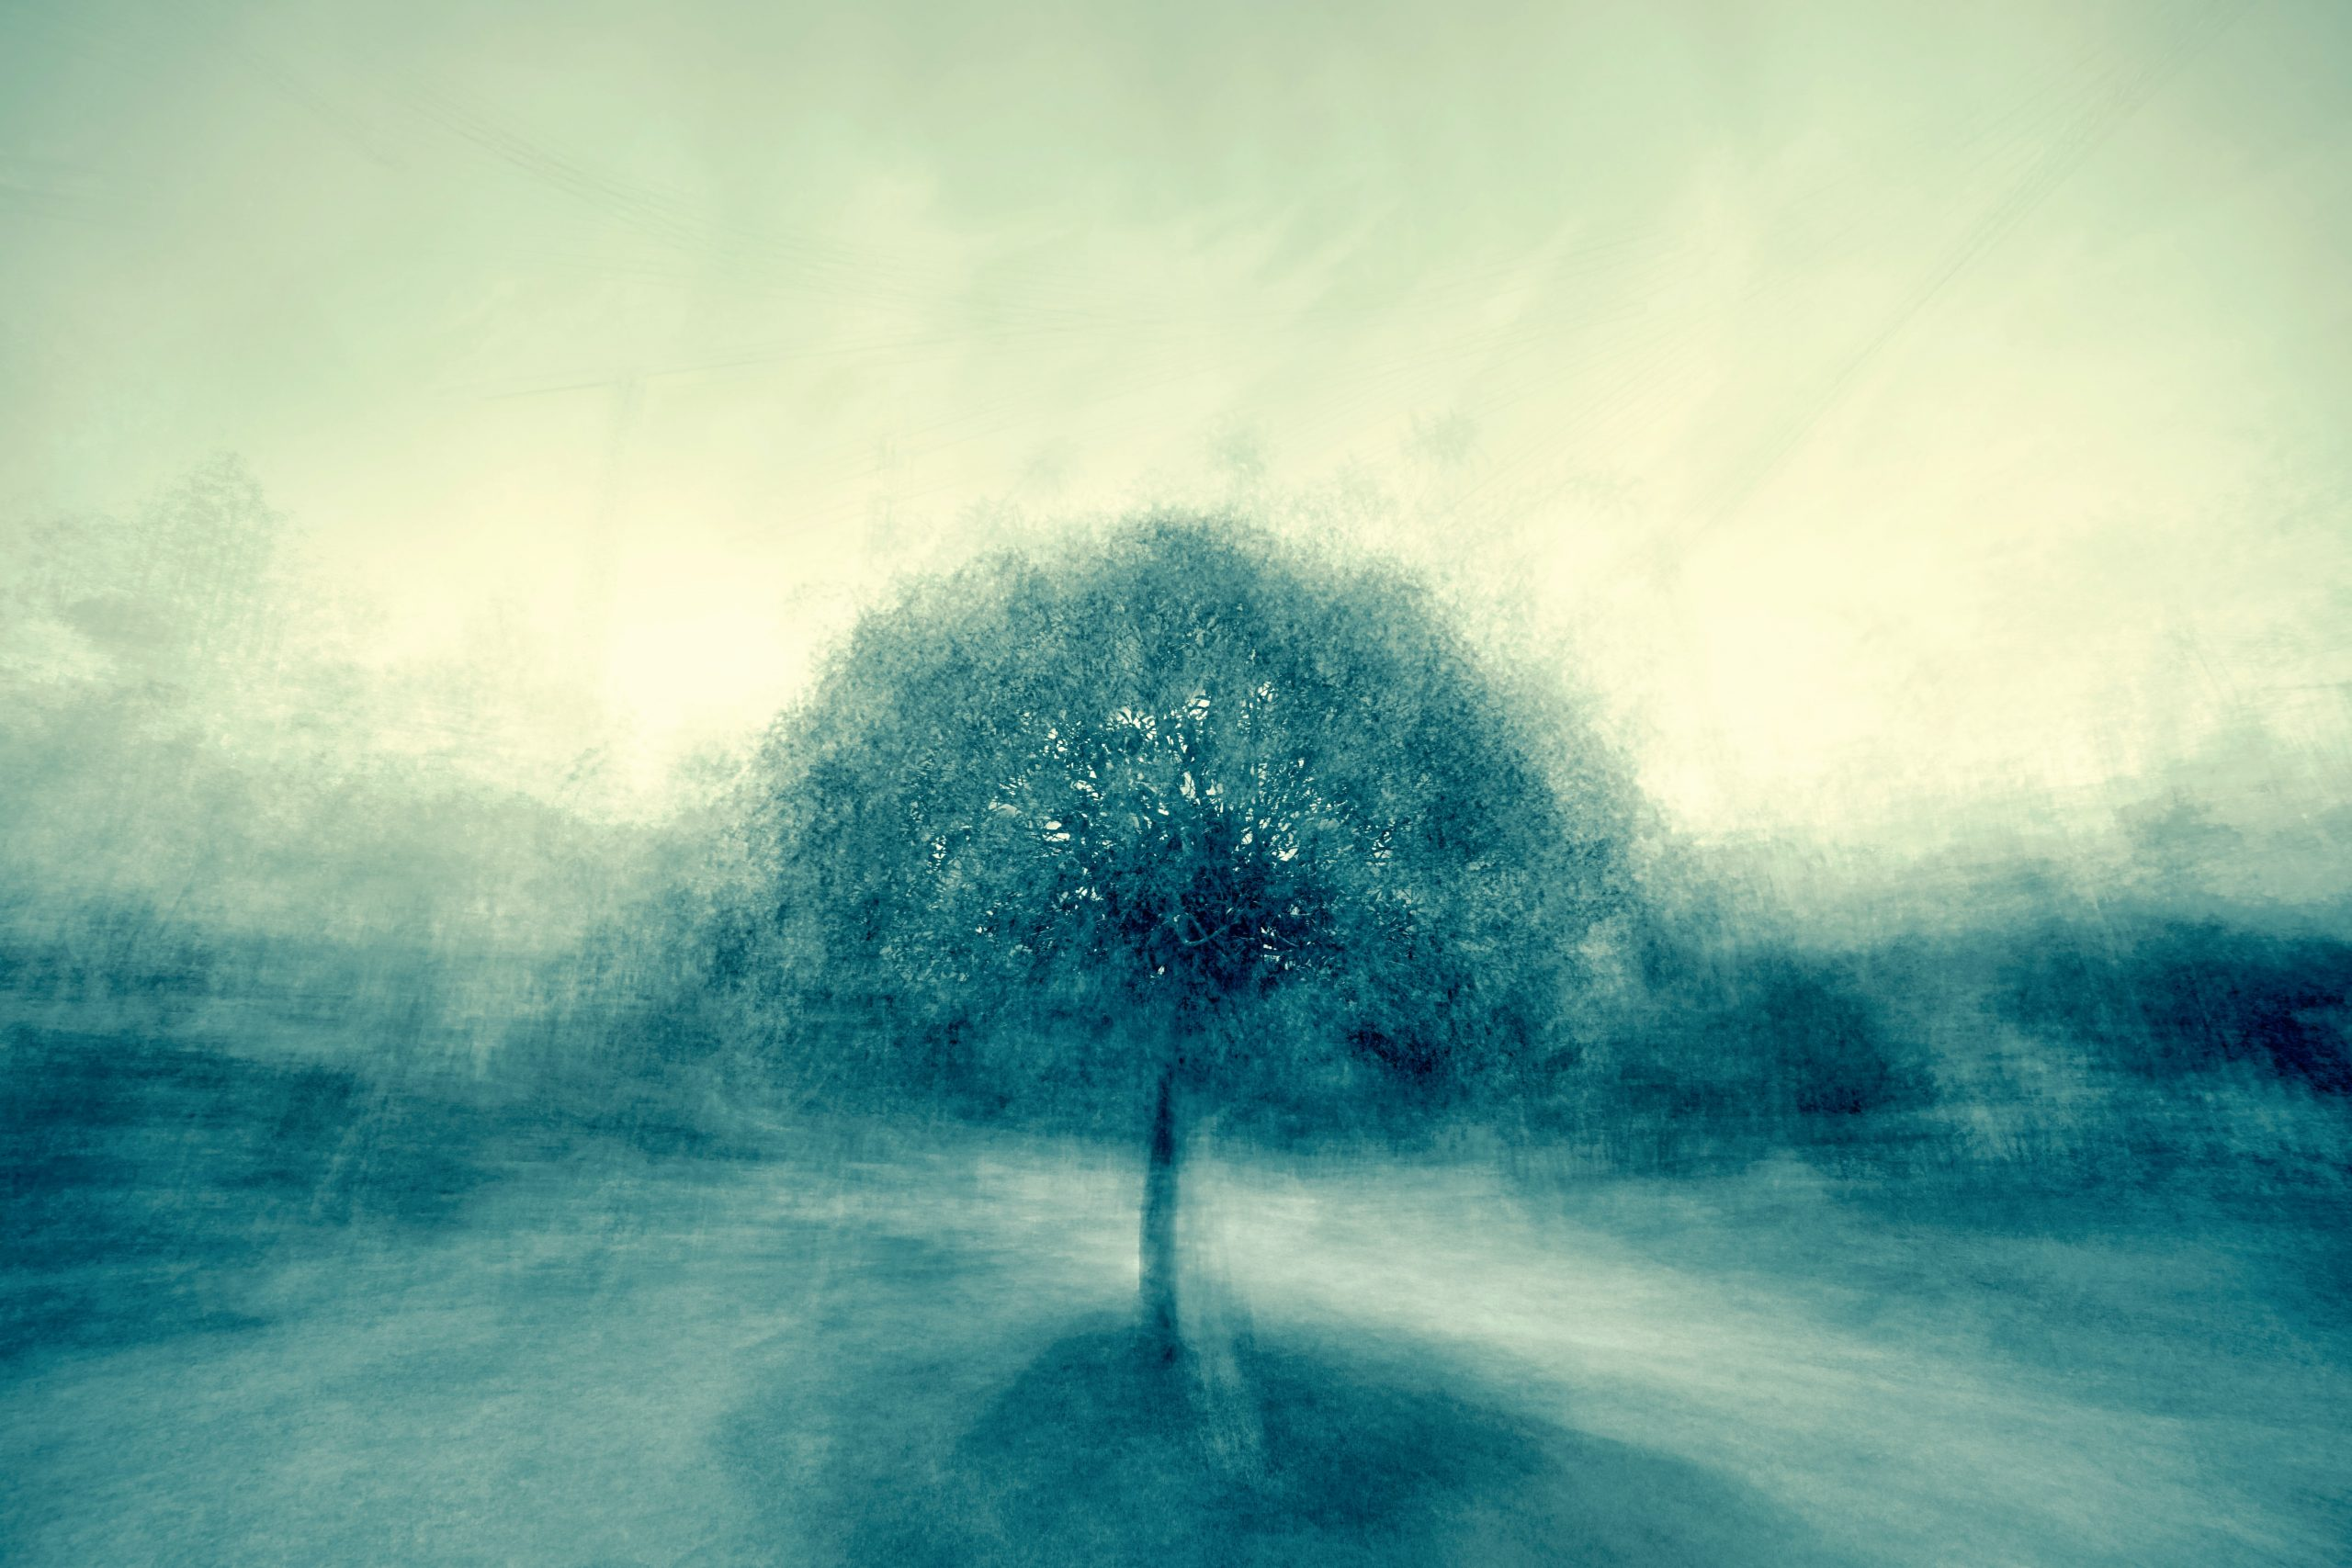 a photograph of a tree with a blue-grey filter and blurred background